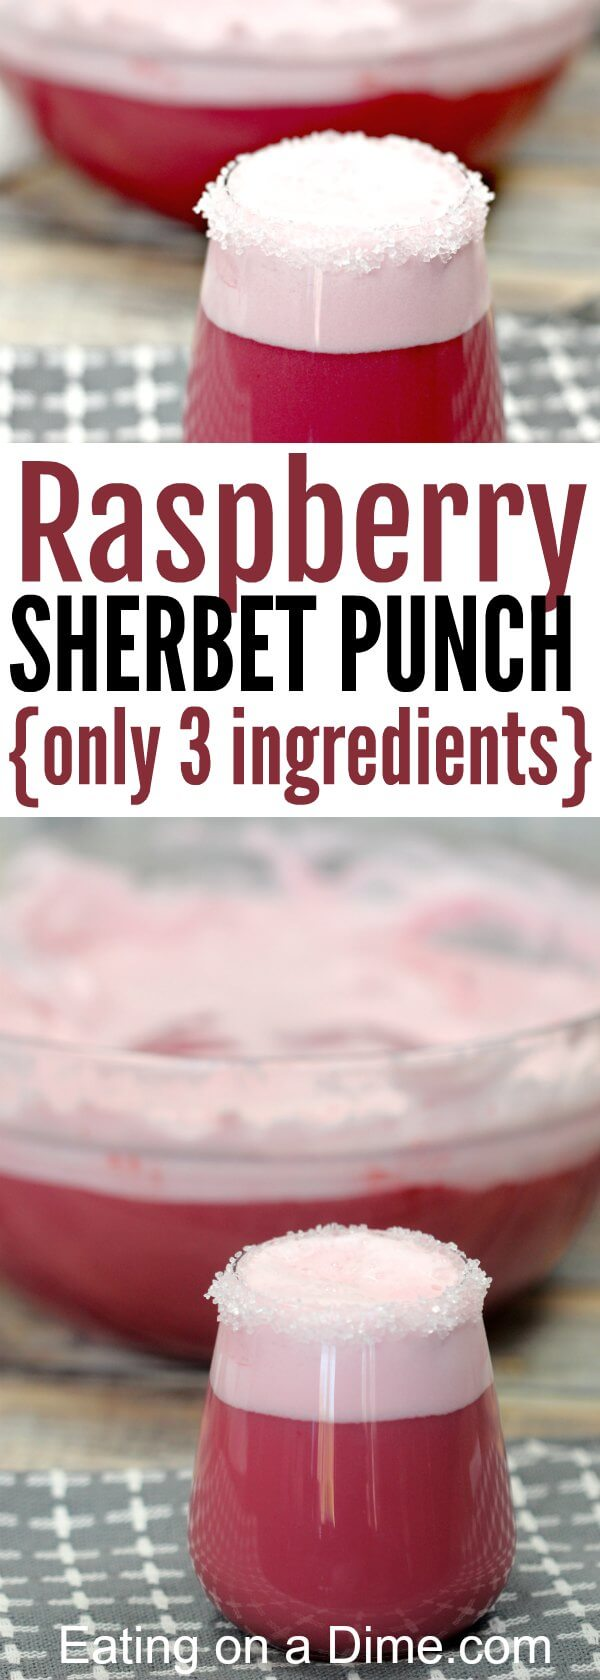 You will love this Easy Raspberry Sherbet Punch Recipe. It is the best pink punch recipe you can make. Try this punch recipe for baby showers and you will love it! This Sherbet punch with gingerale is so tasty!